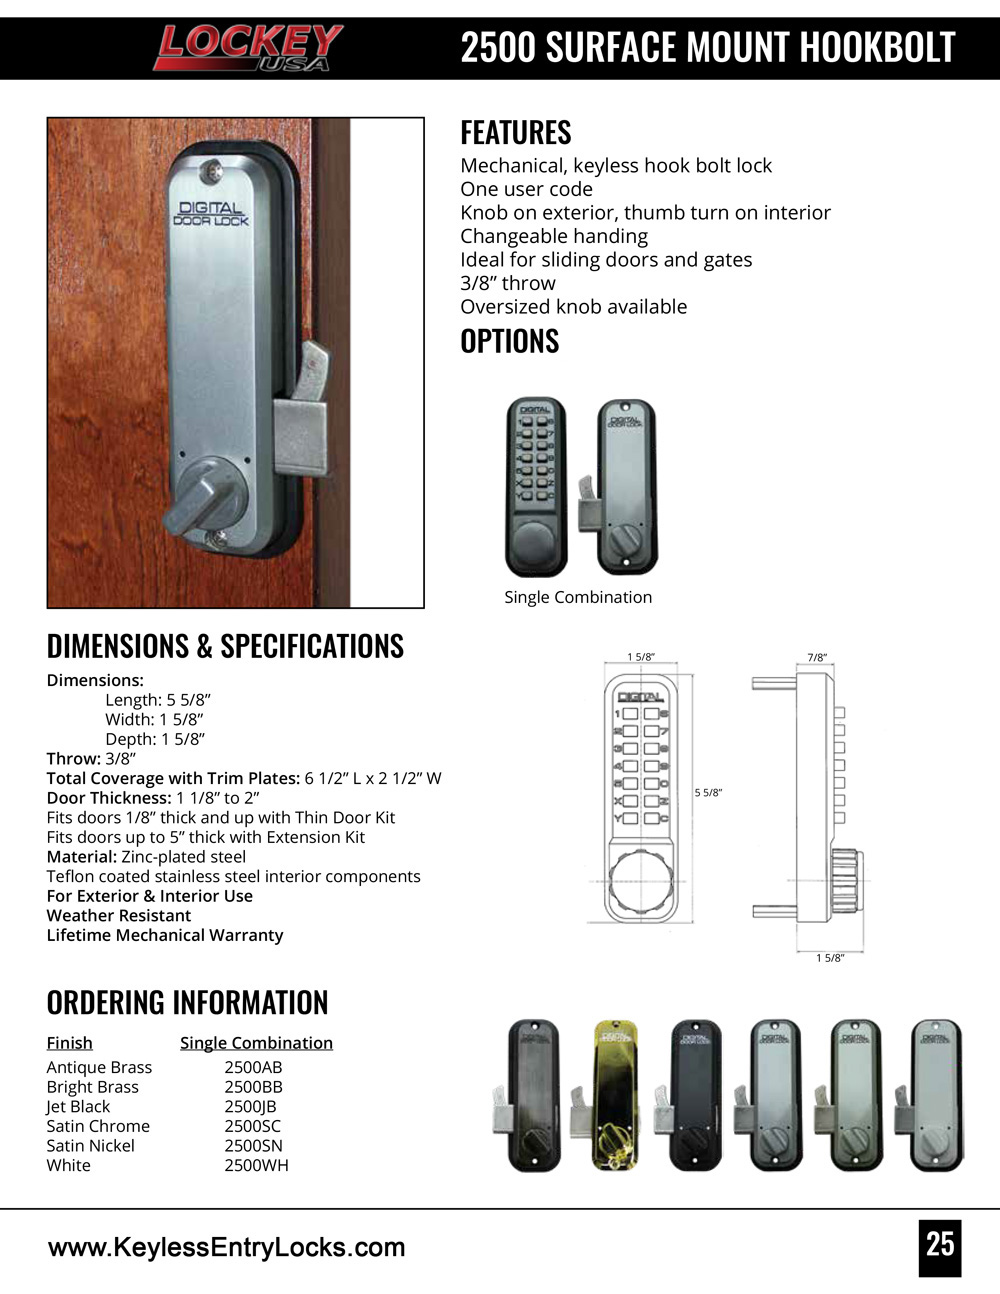 Lockey 2500 Hookbolt Keypad Lock